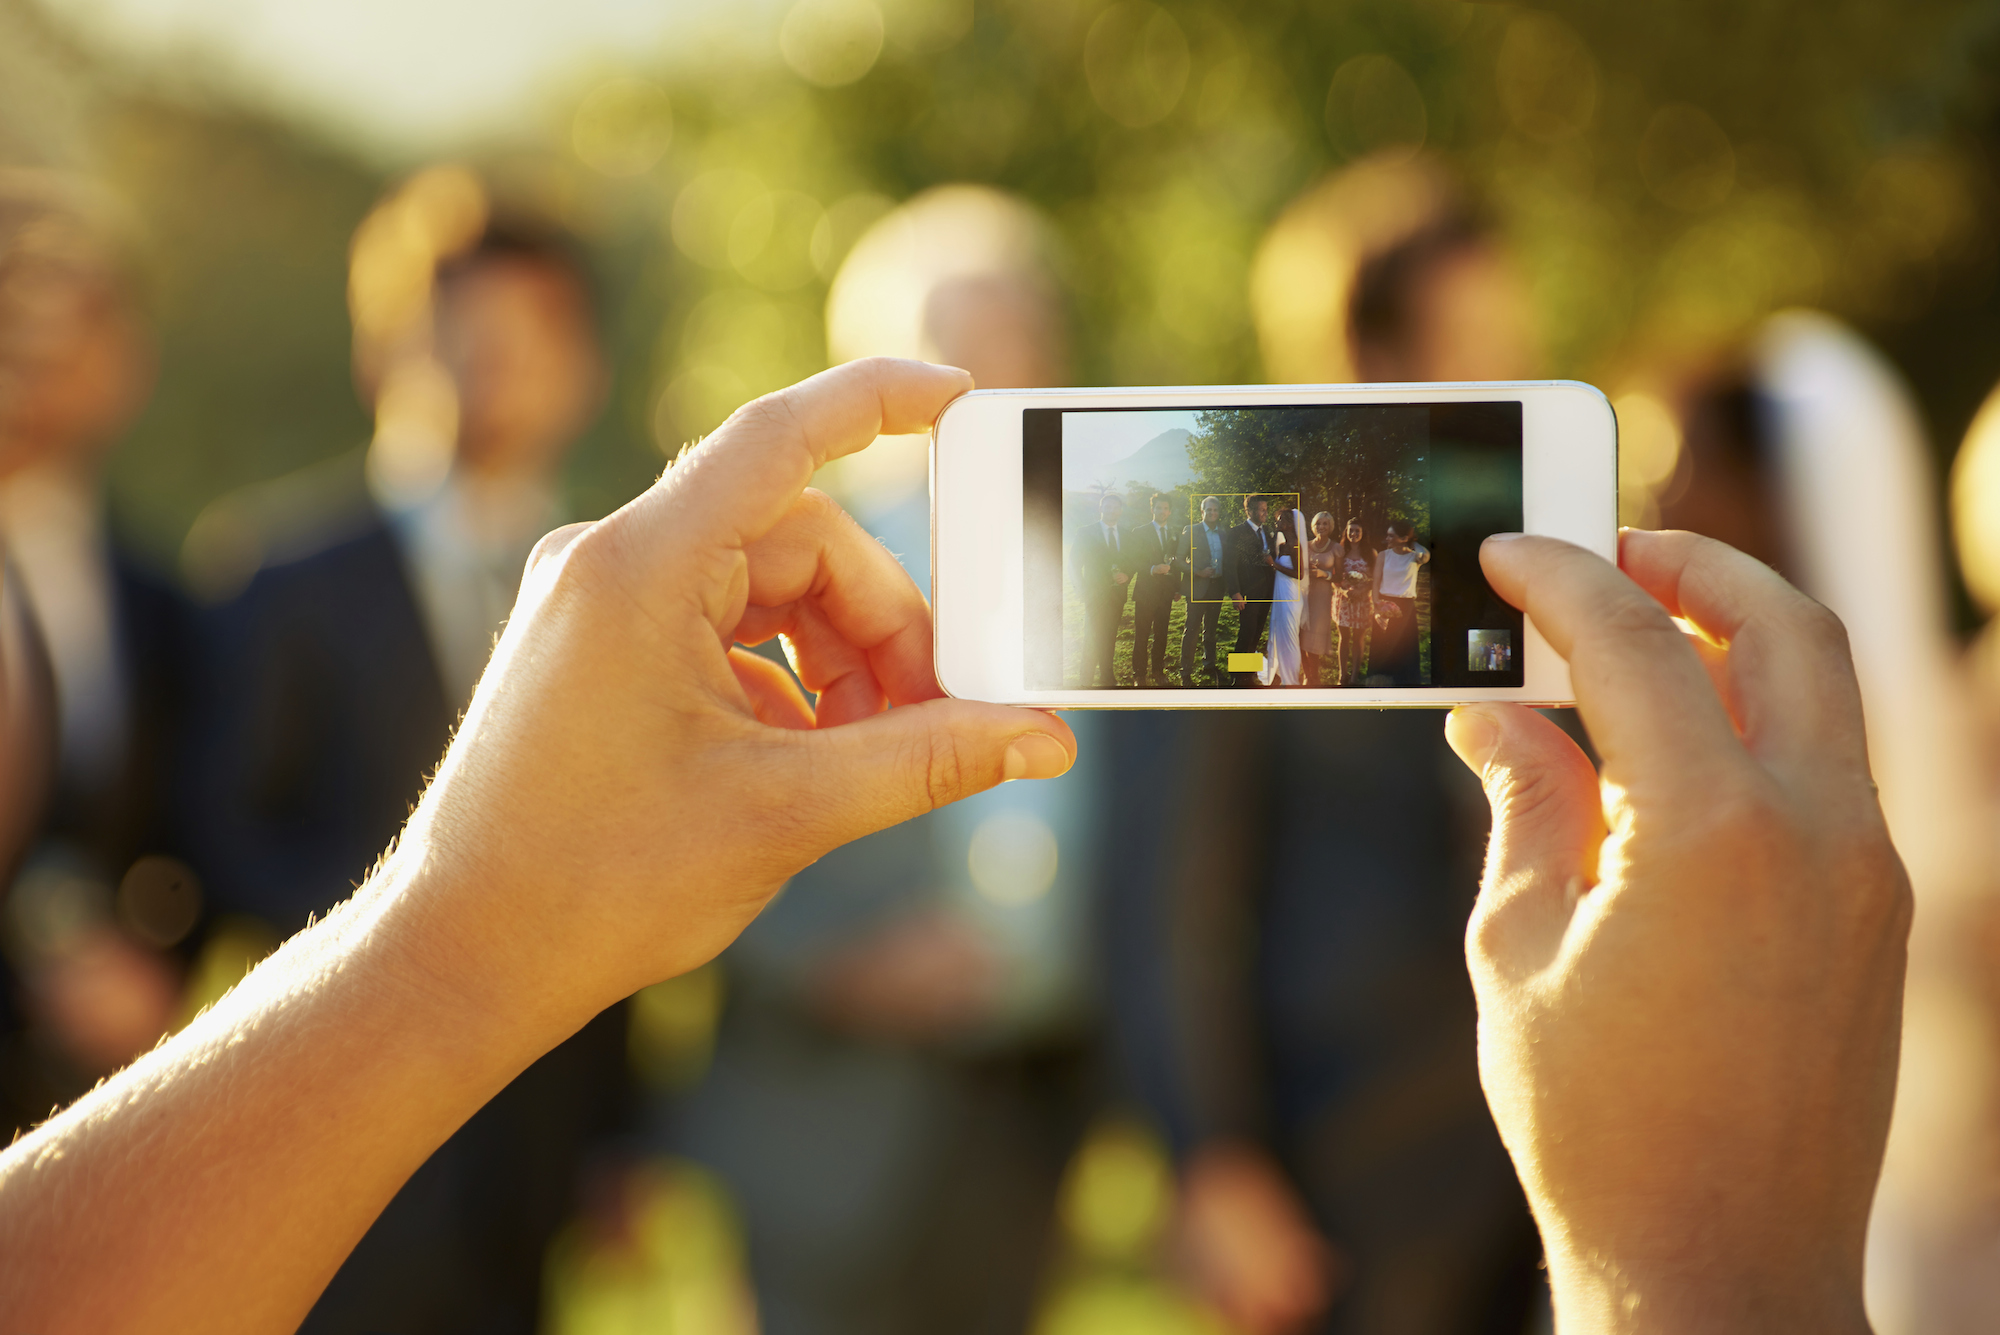 Taking a picture of the wedding party with a smartphone.